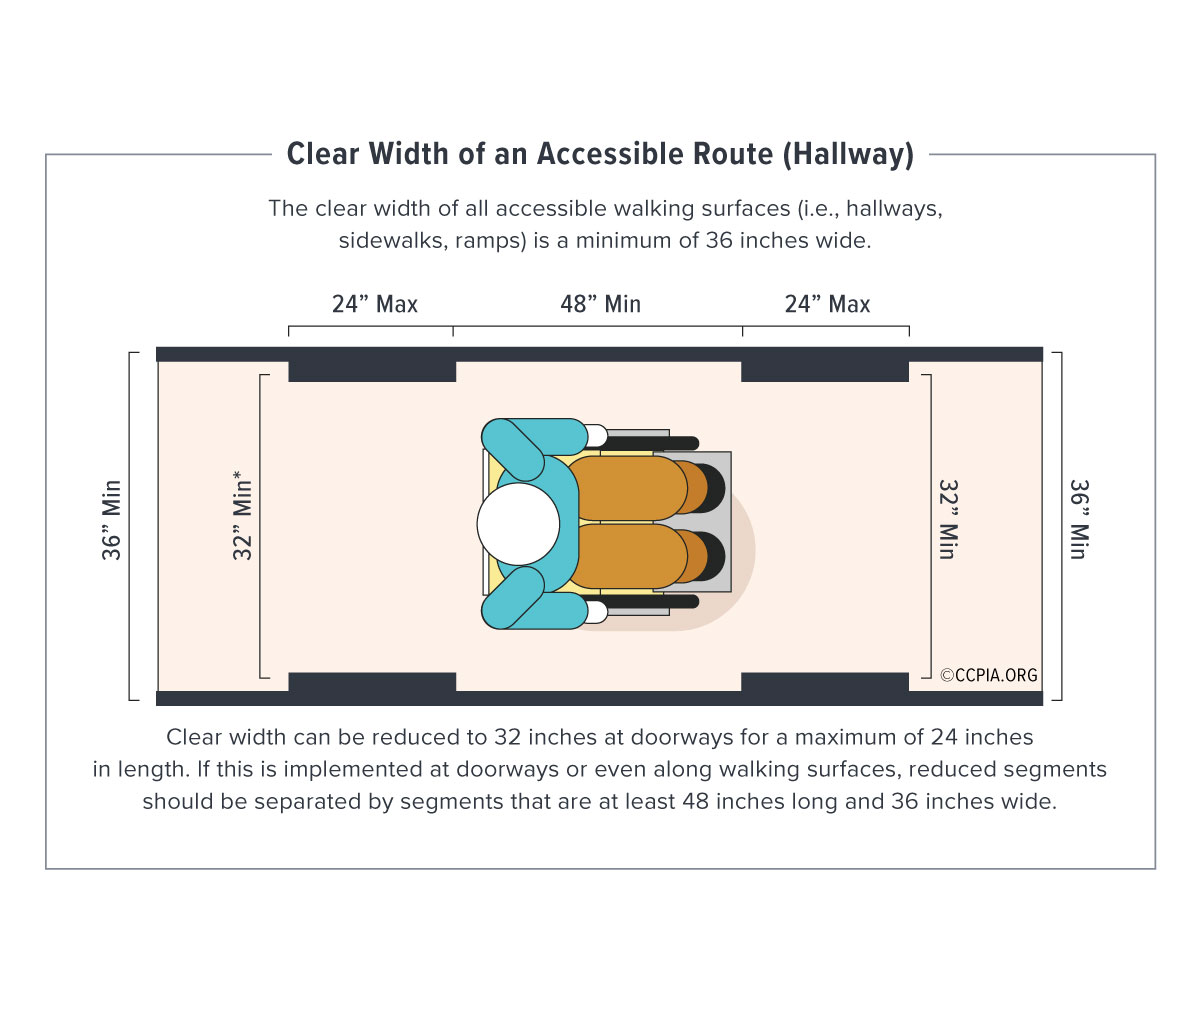 Clear width of an accessible route (hallway), accessibility in public accommodations and commercial facilities.